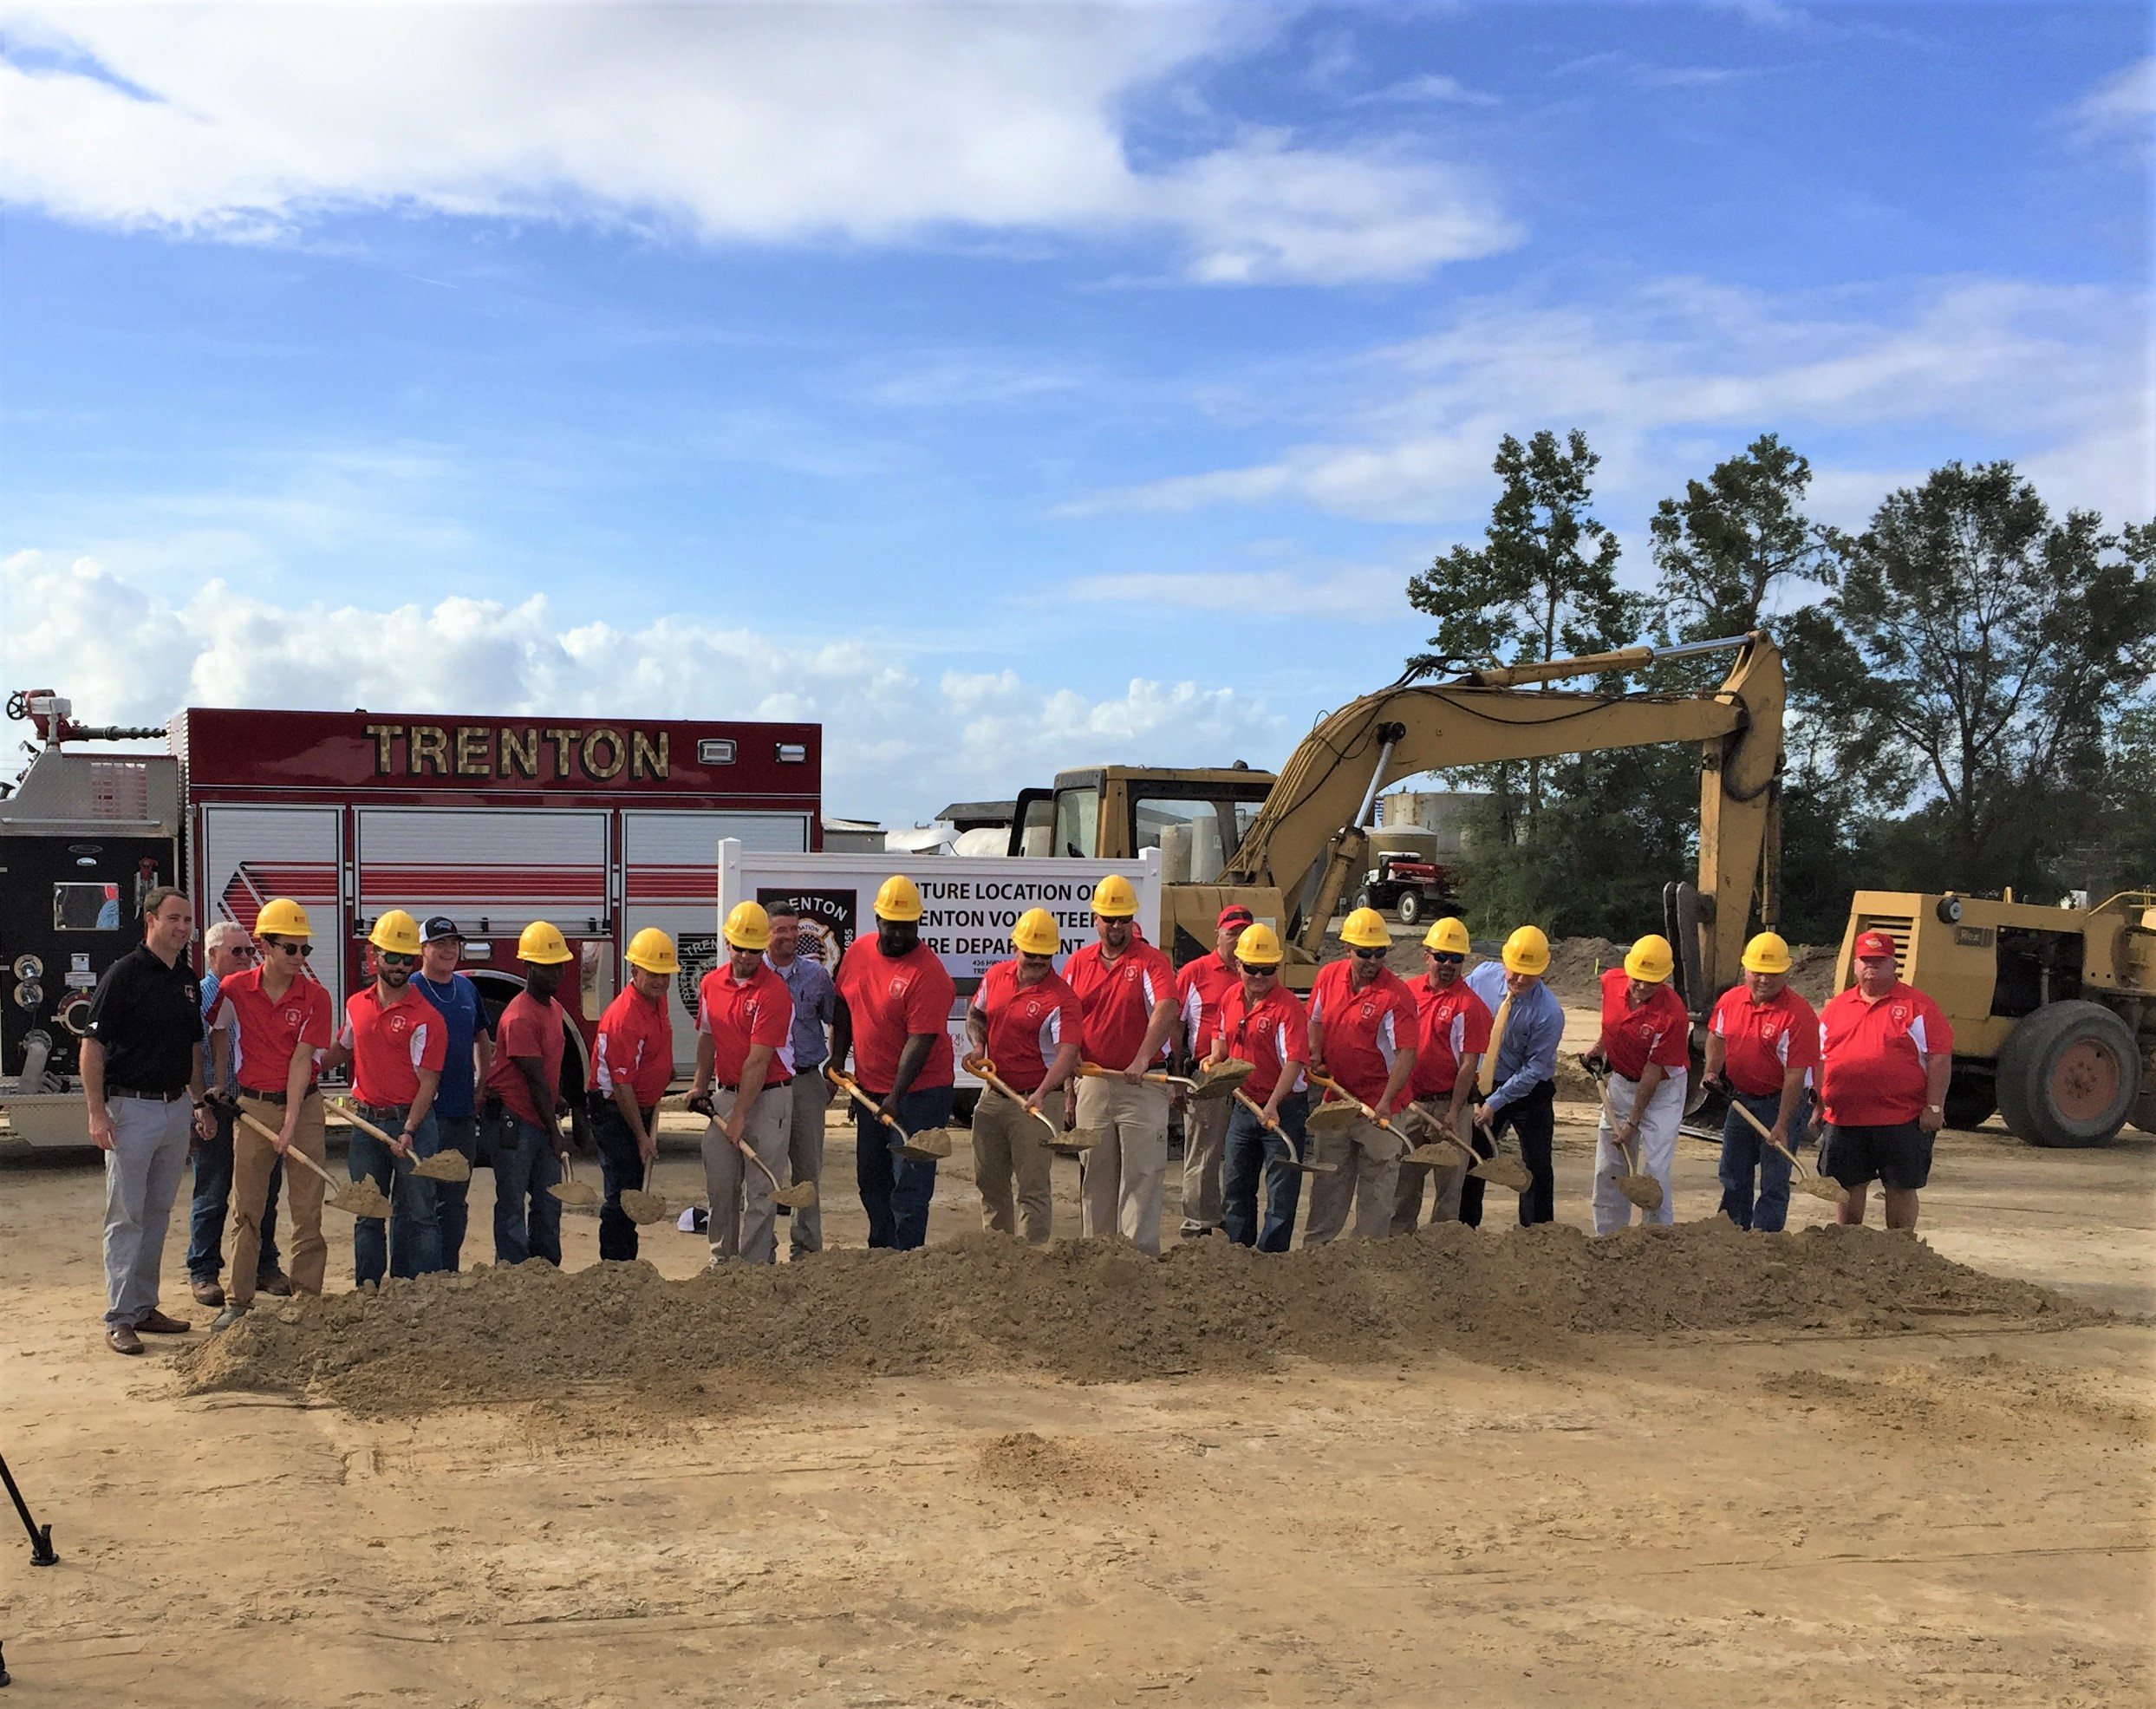 Volunteer Trenton Firemen with shovels and hard hats performing a groundbreaking ceremony